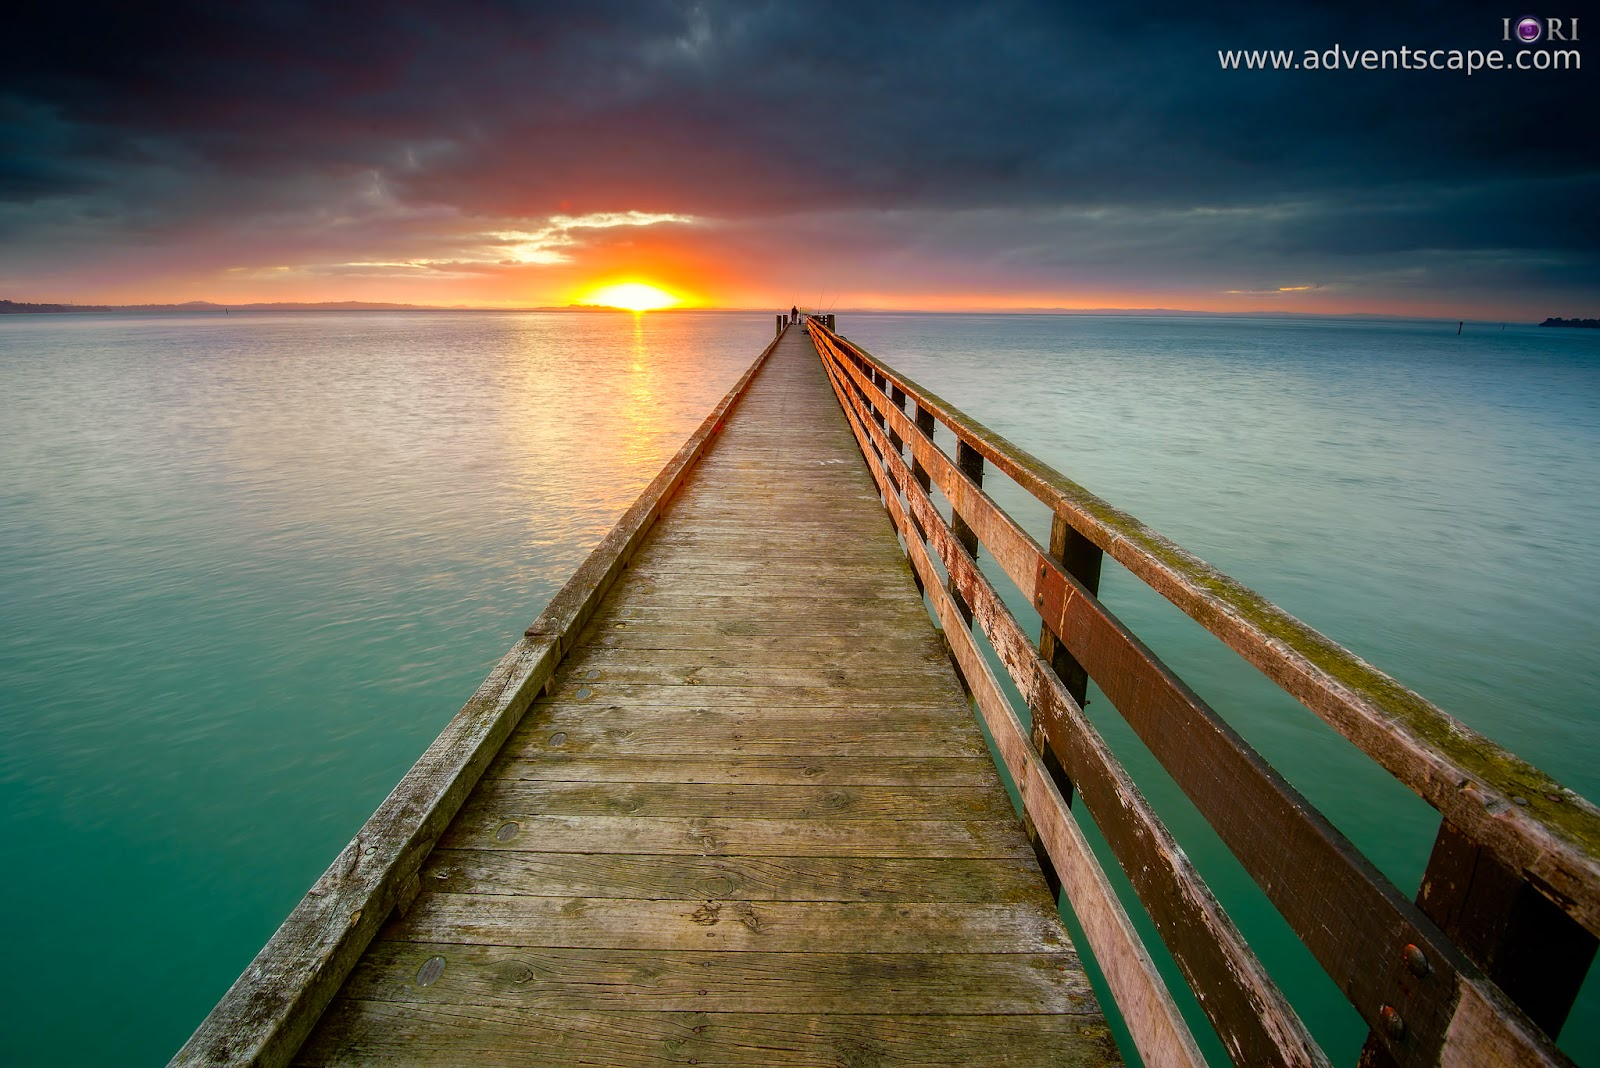 Philip Avellana, iori, adventscape, Cornwallis, jetty, seascape, landscape, North Island, New Zealand, fine art, sunrise